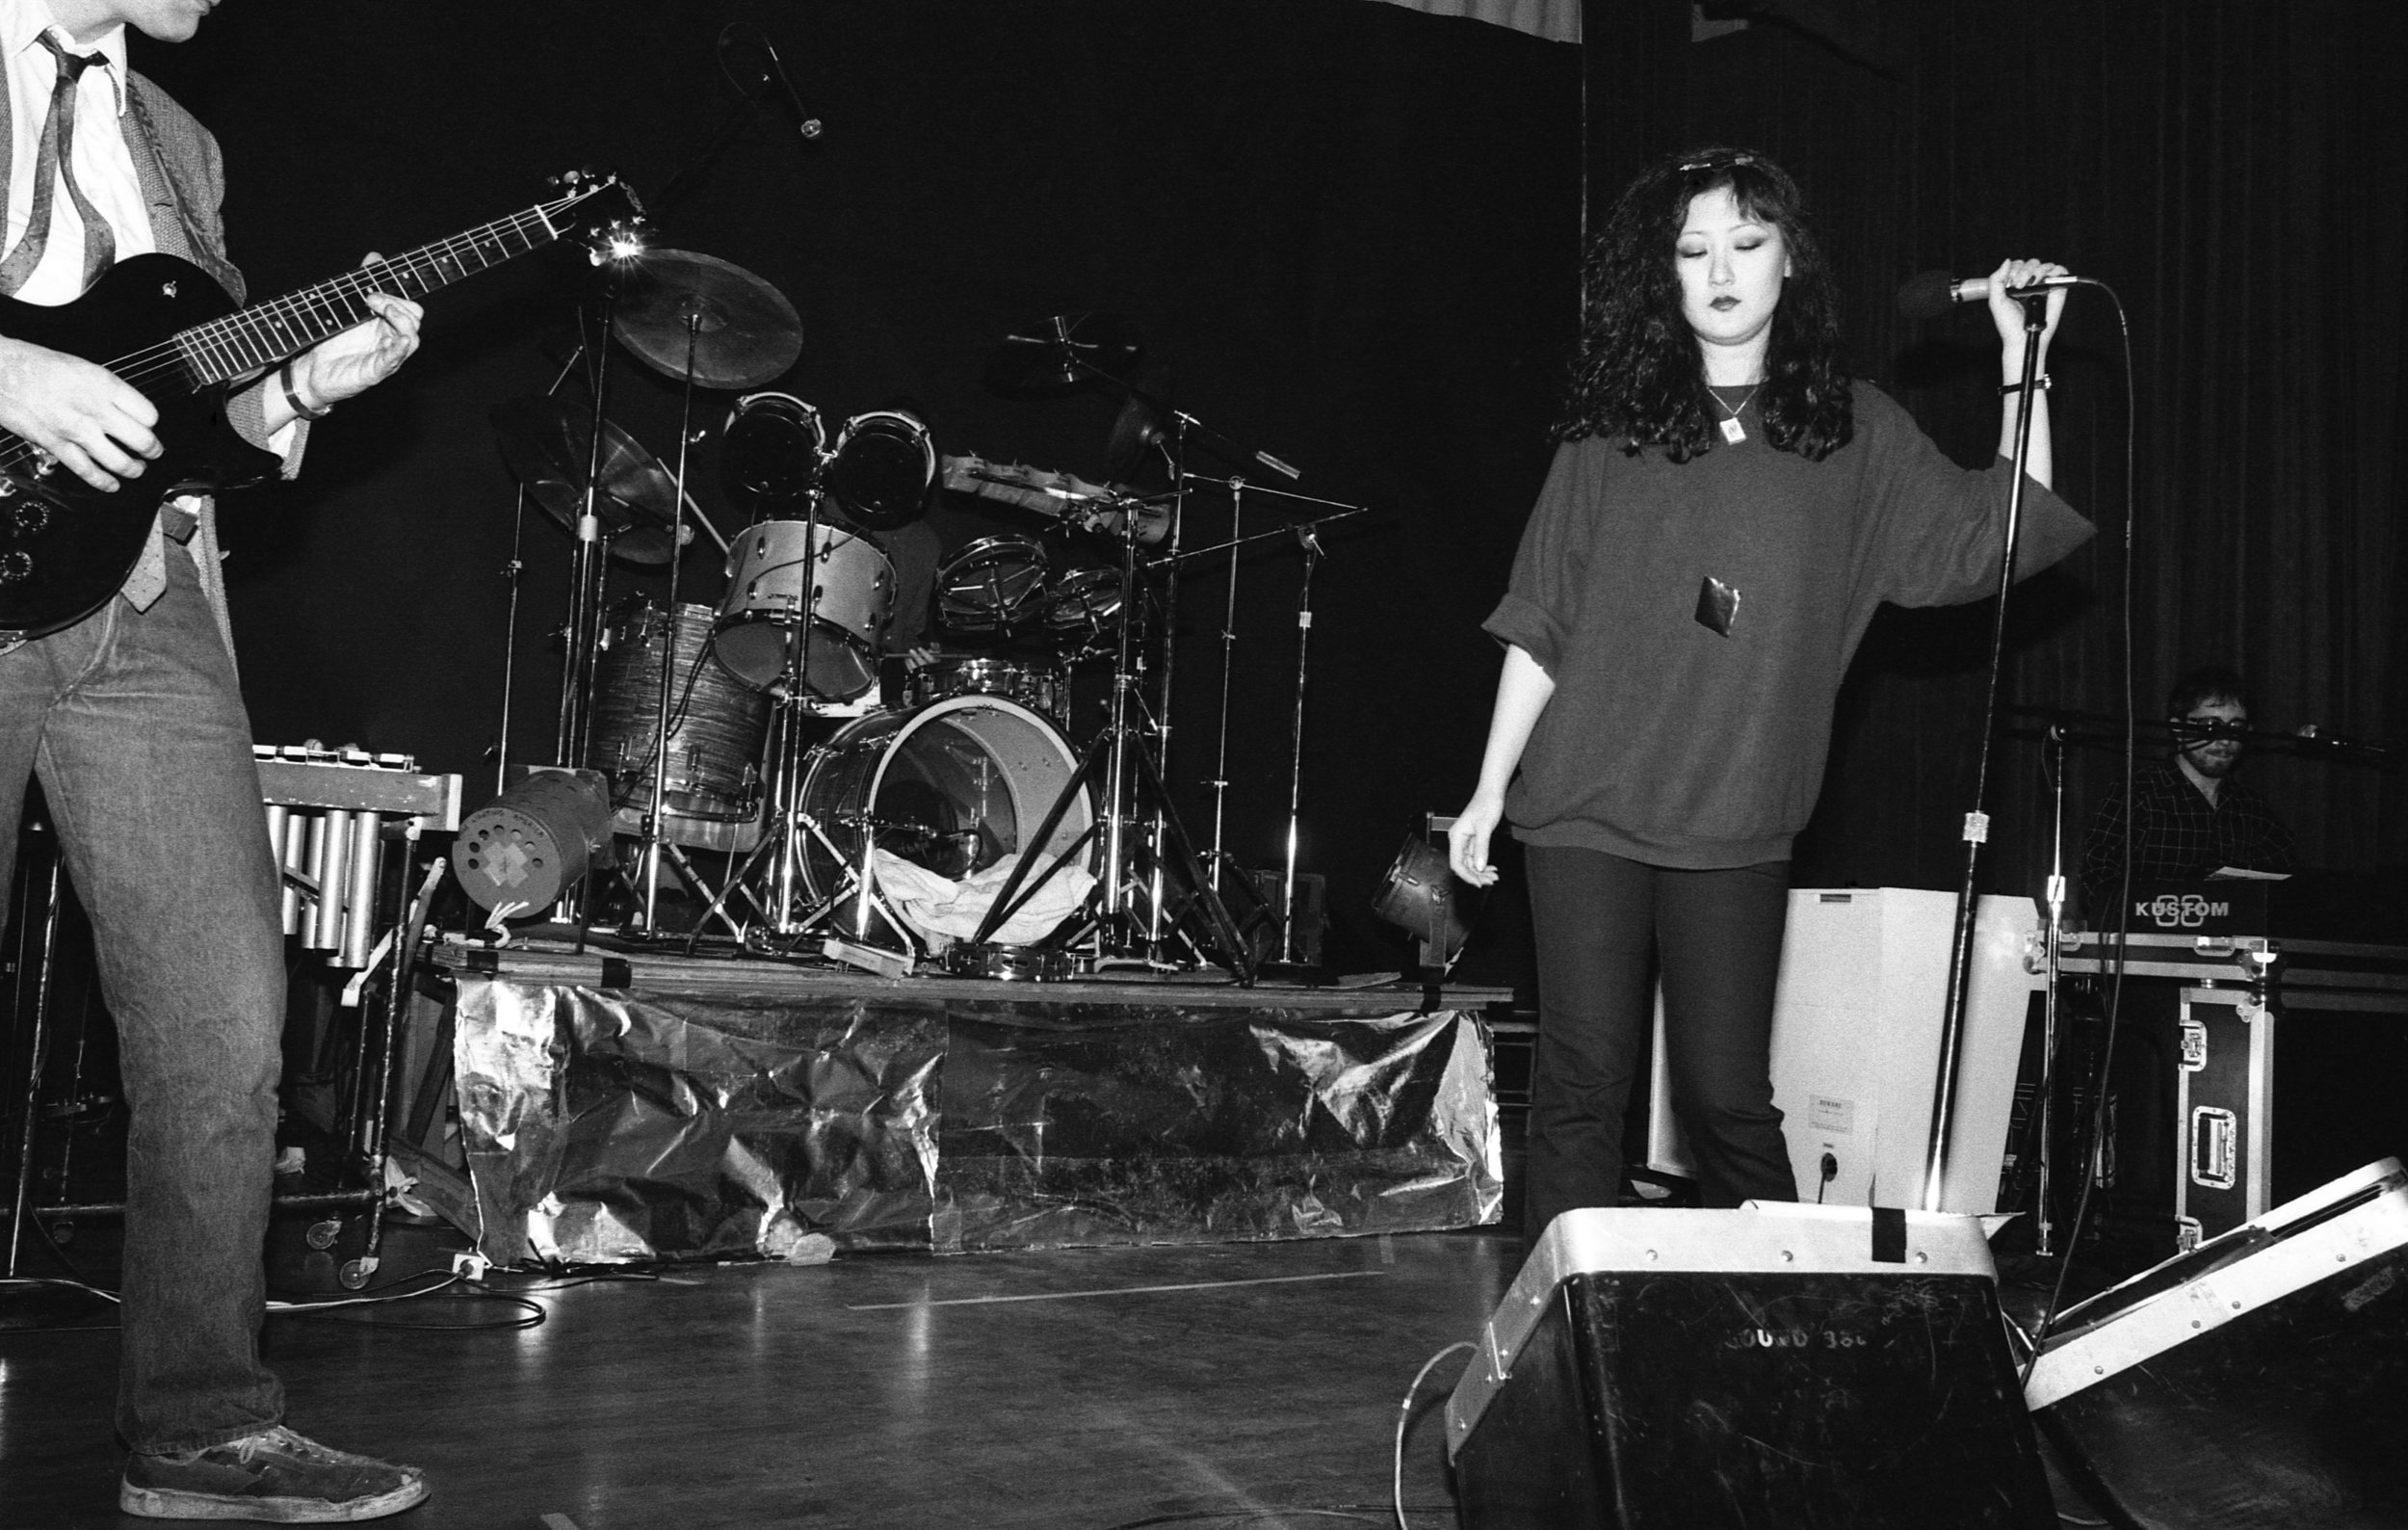 Fibonaccis performing at the Ukrainian Cultural Center, Los Angeles, 1982. (3/7)